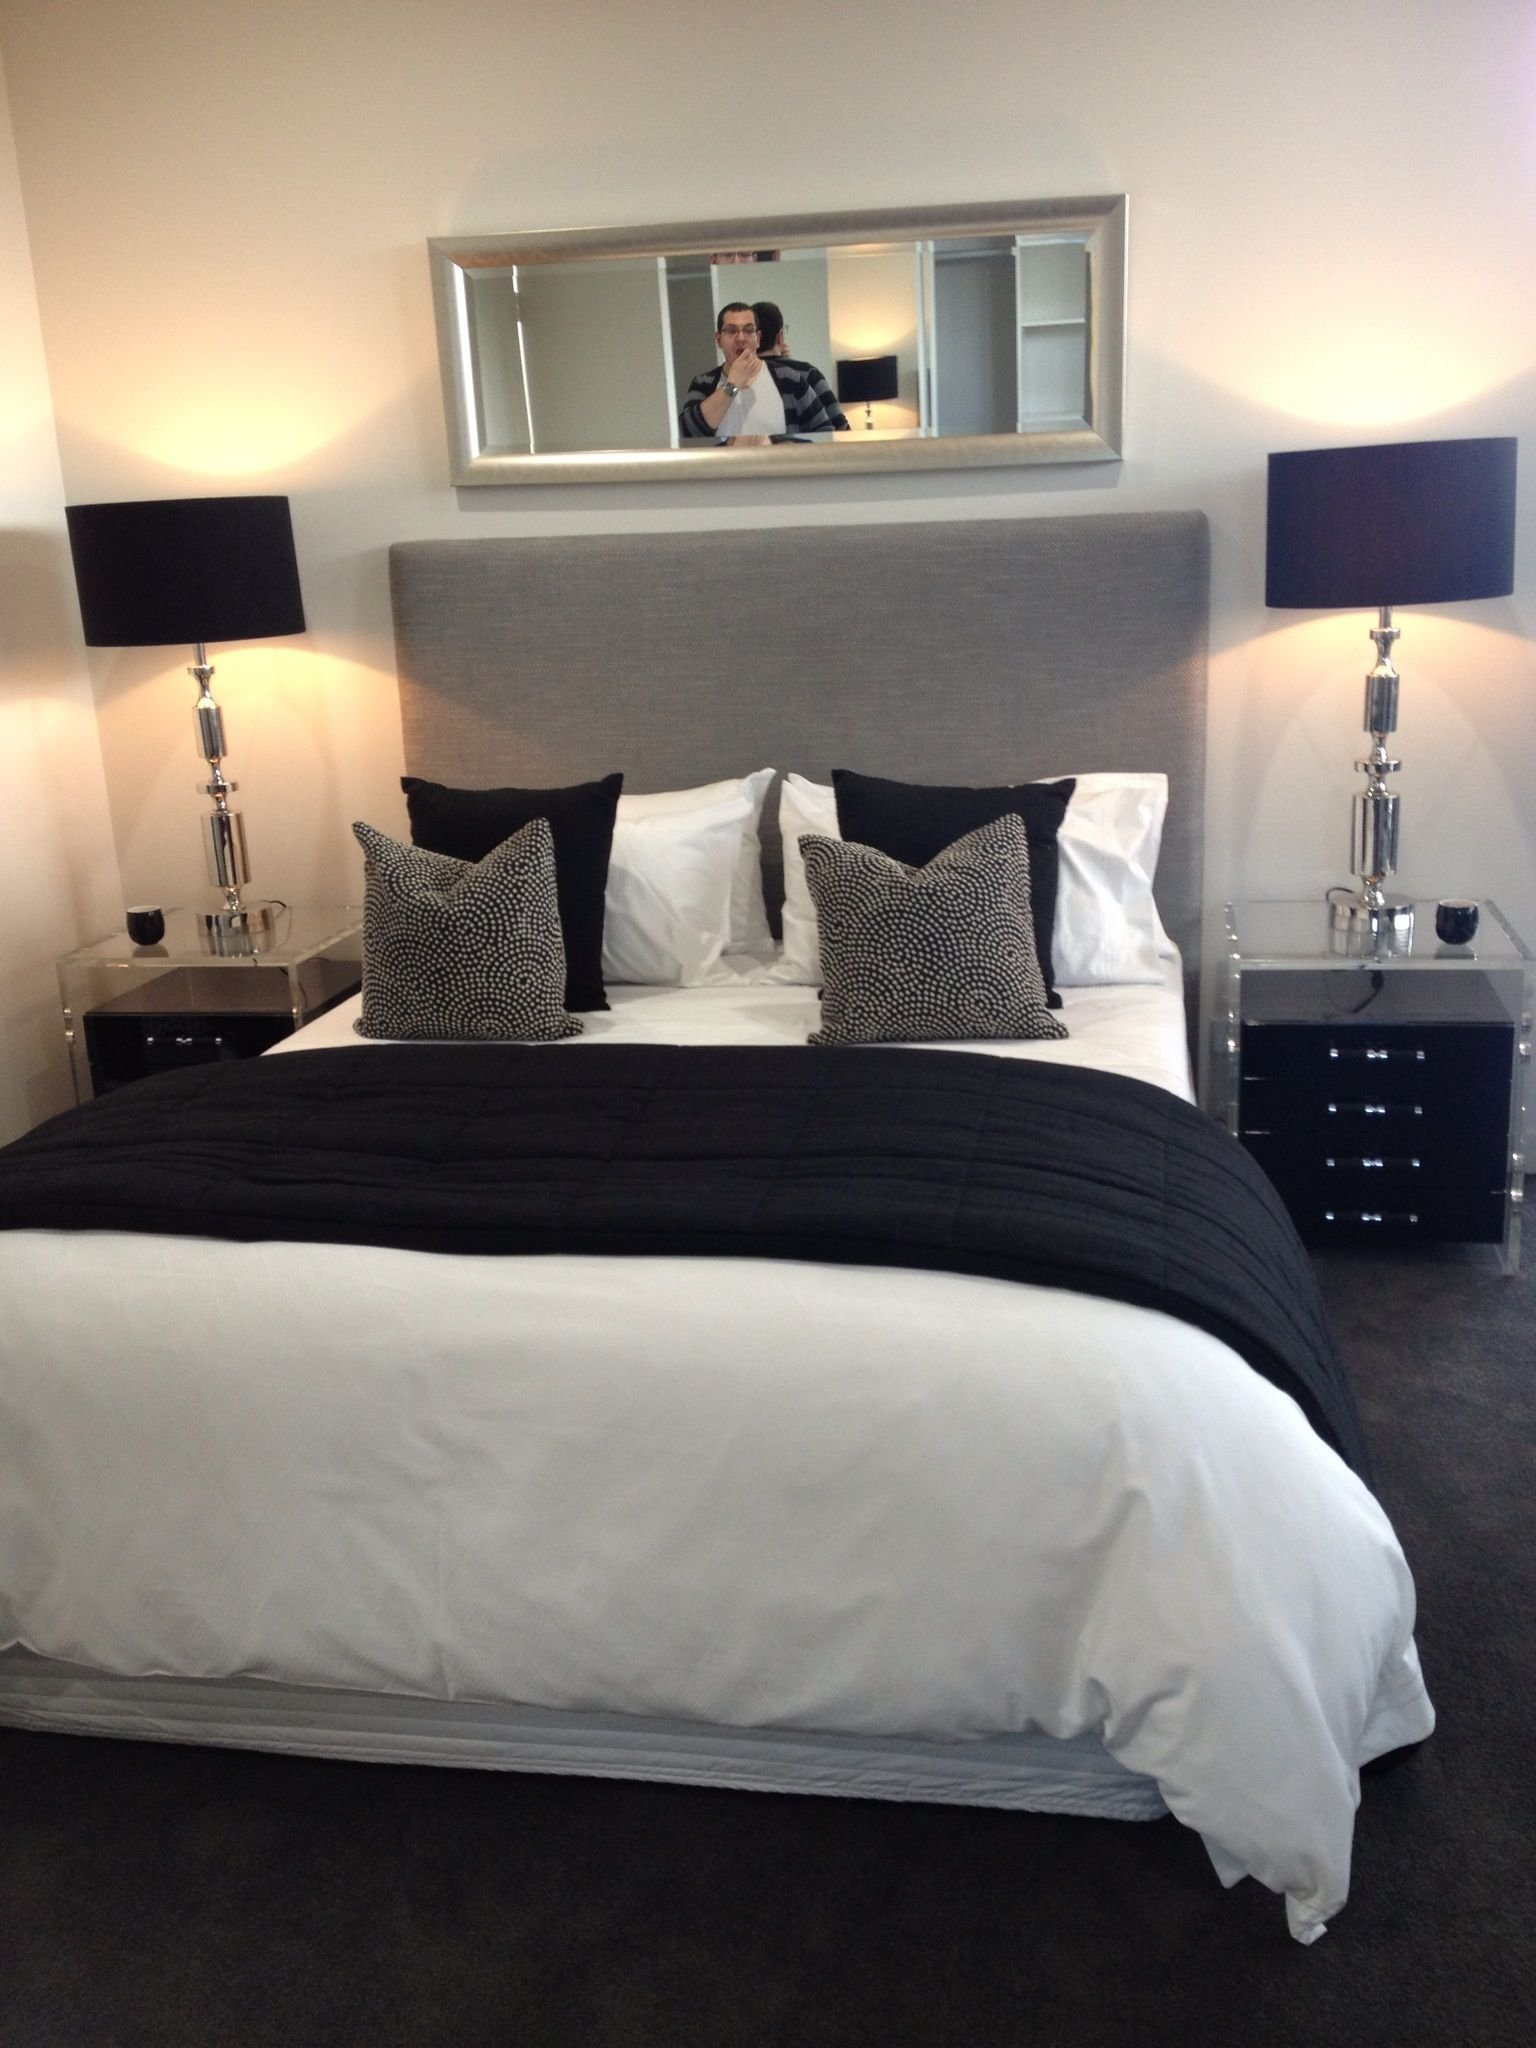 Best Bedroom Chic Décor Black White And Gray Stuff I With Pictures